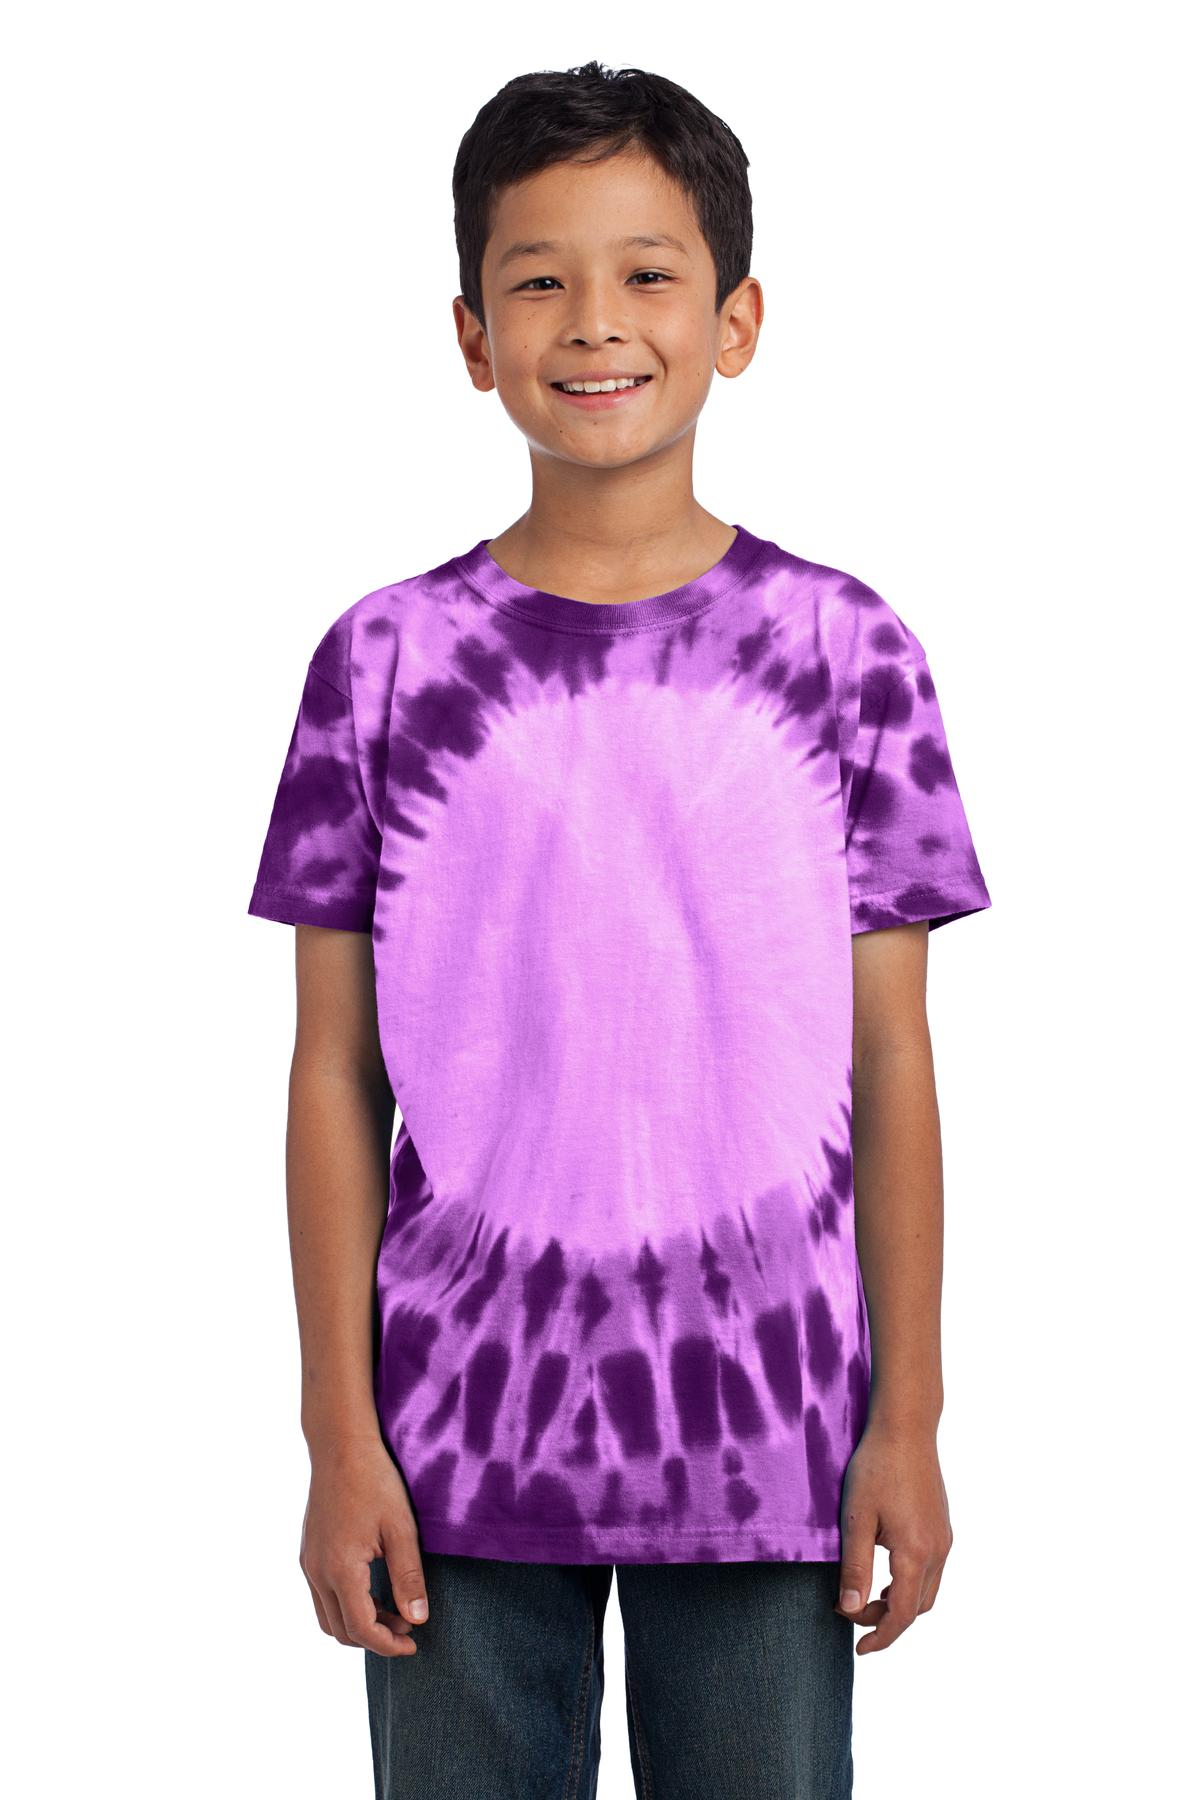 Port & Company ®  - Youth Window Tie-Dye Tee. PC149Y - Purple